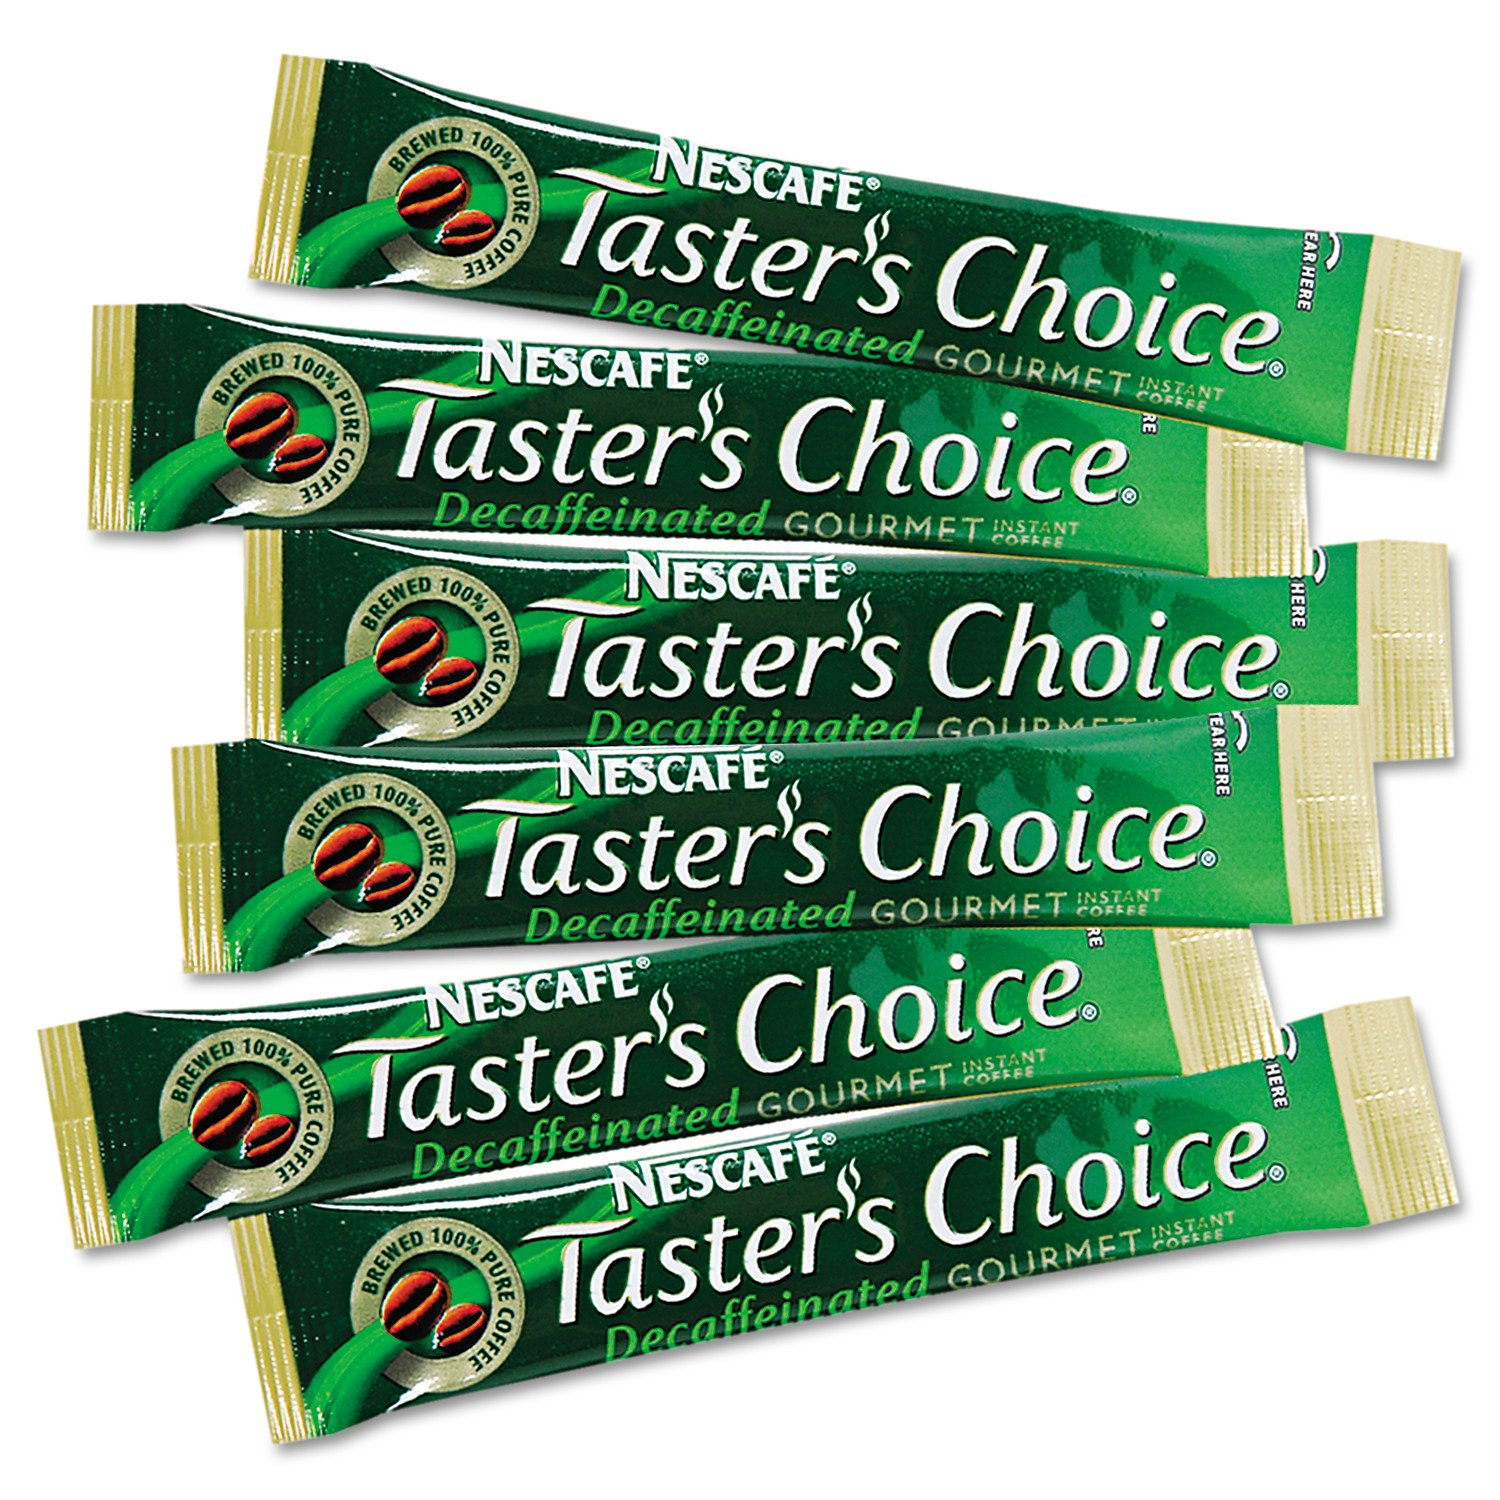 Nescafe Coffee, Taster's Choice, House Blend Decaf Stick Pack, 4.79 Ounce Package, 80 Count